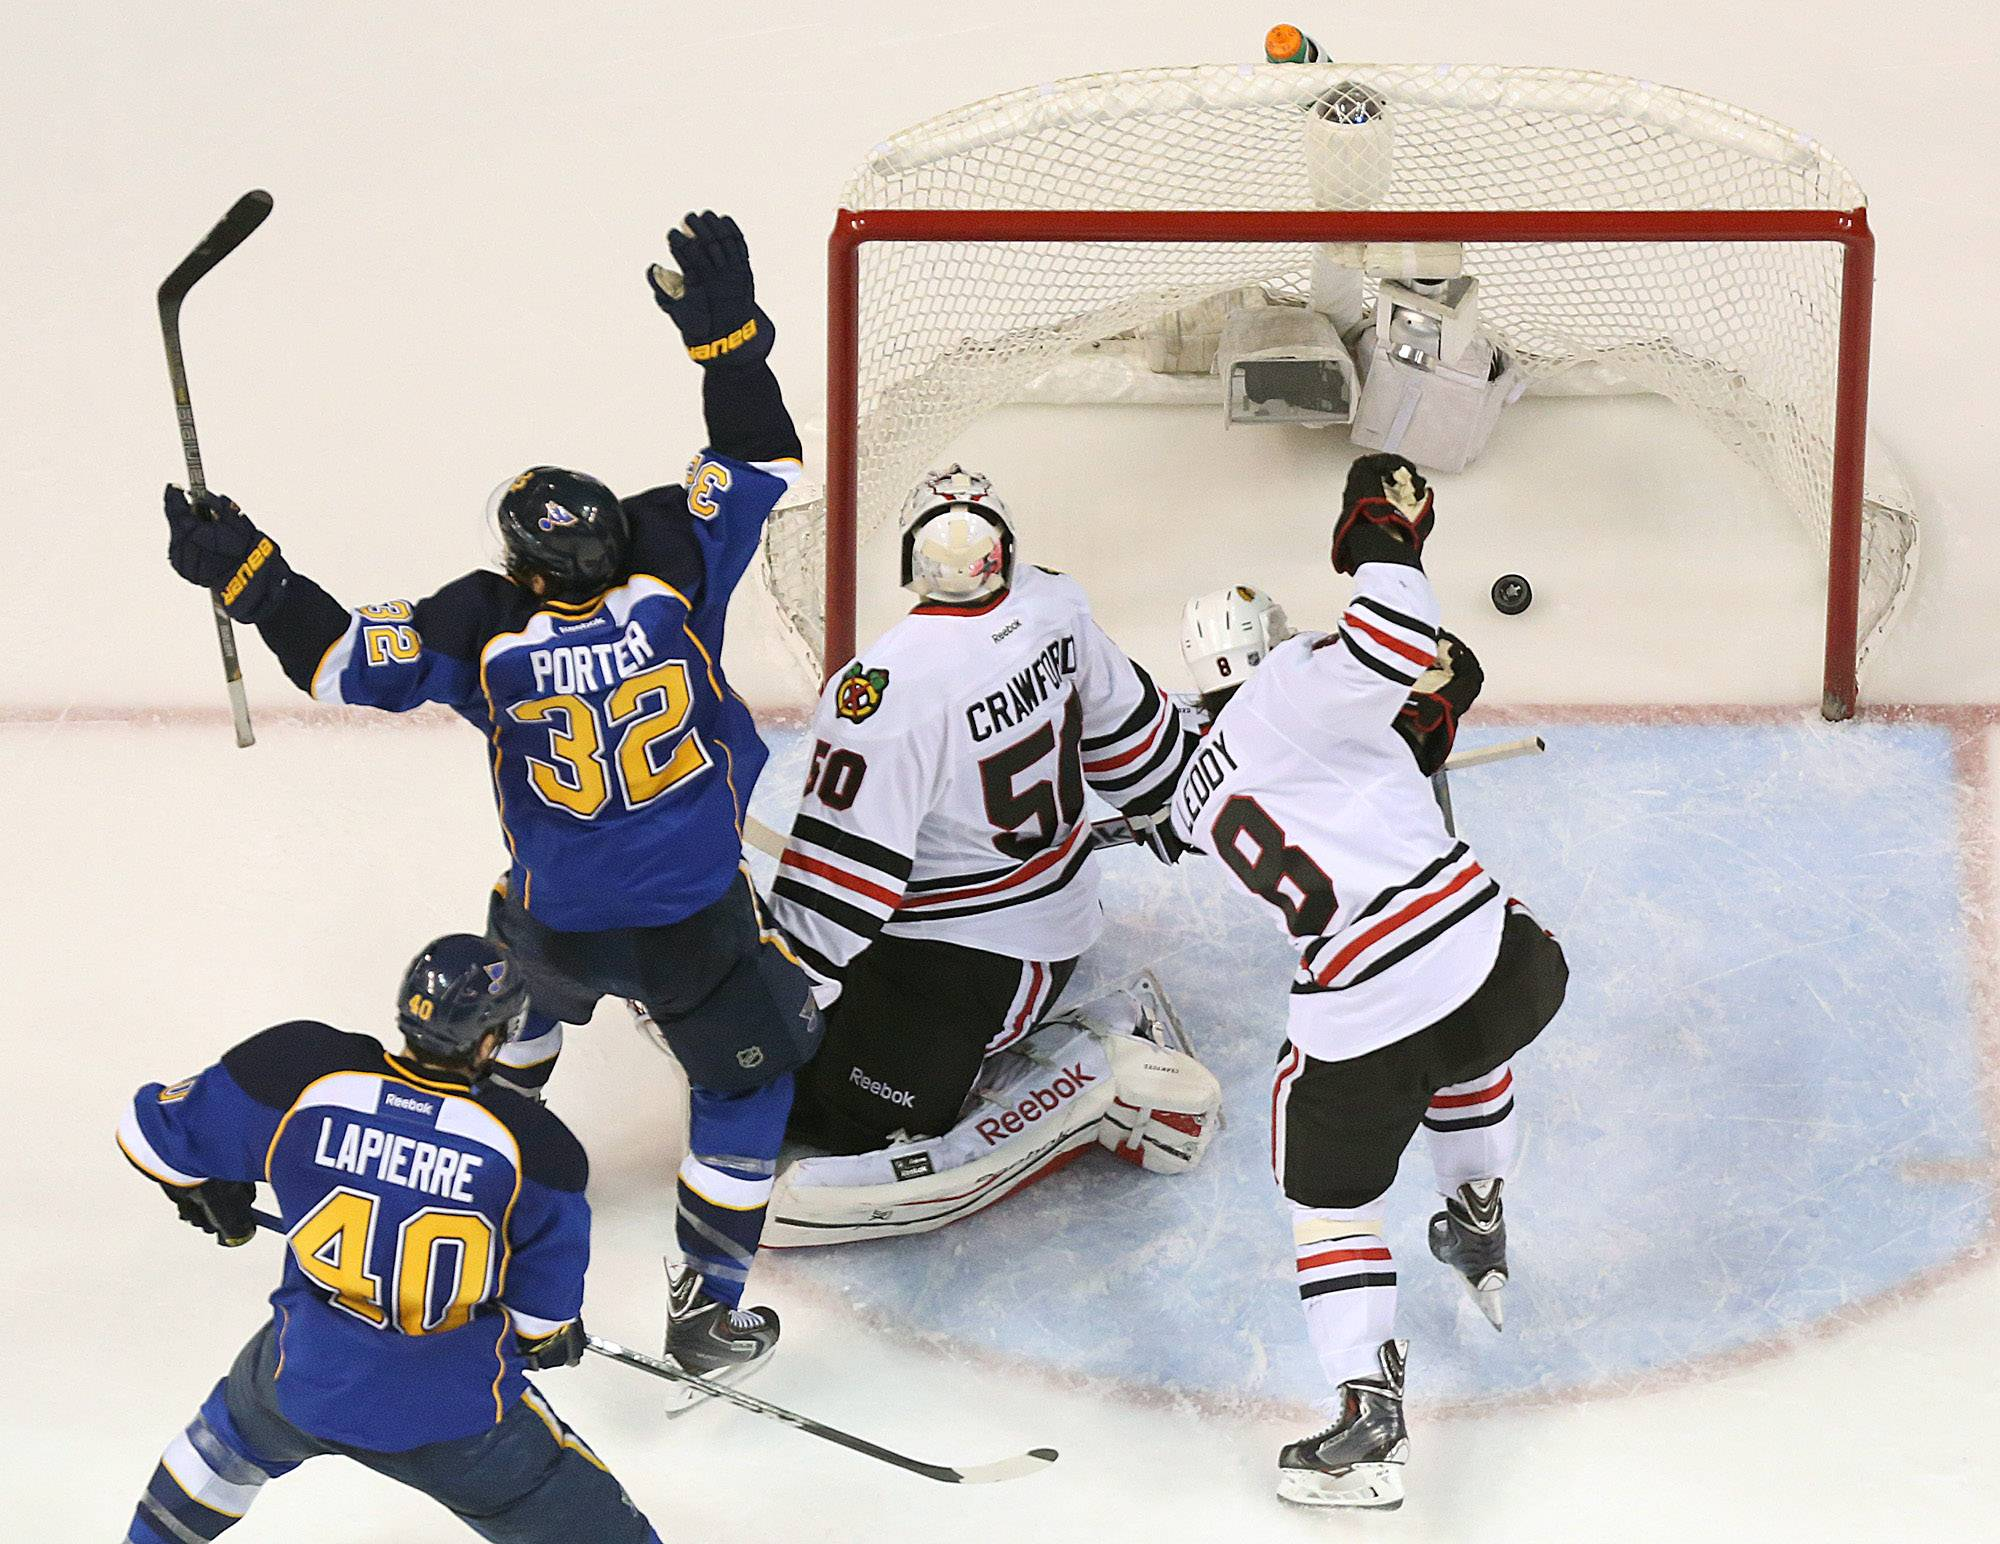 St. Louis Blues left wing Chris Porter (32) reacts after teammate Barret Jackman scored the game-winning goal in overtime past Chicago Blackhawks goaltender Corey Crawford during Game 2 of a first-round NHL hockey playoff series on Saturday in St. Louis. The Hawks who are down two games in the playoff series play the Blues tonight at 7:30.